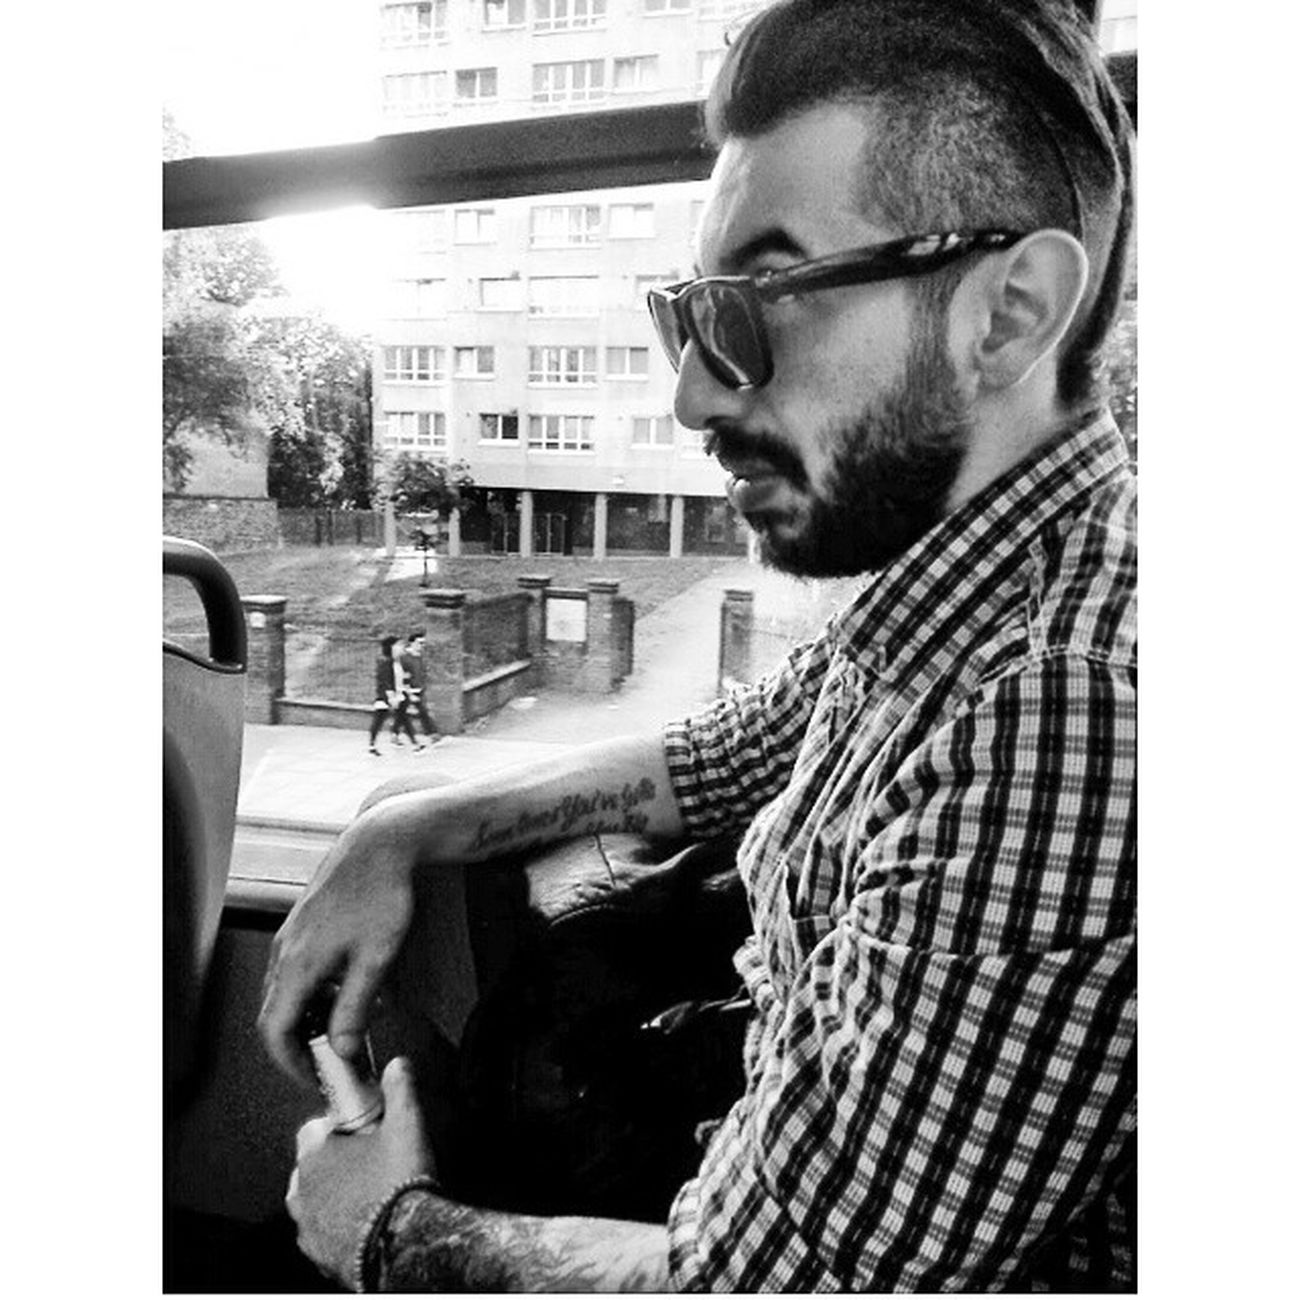 London 243bus Blackandwhite Tattoos manmodel beards rayban levis shoreditch